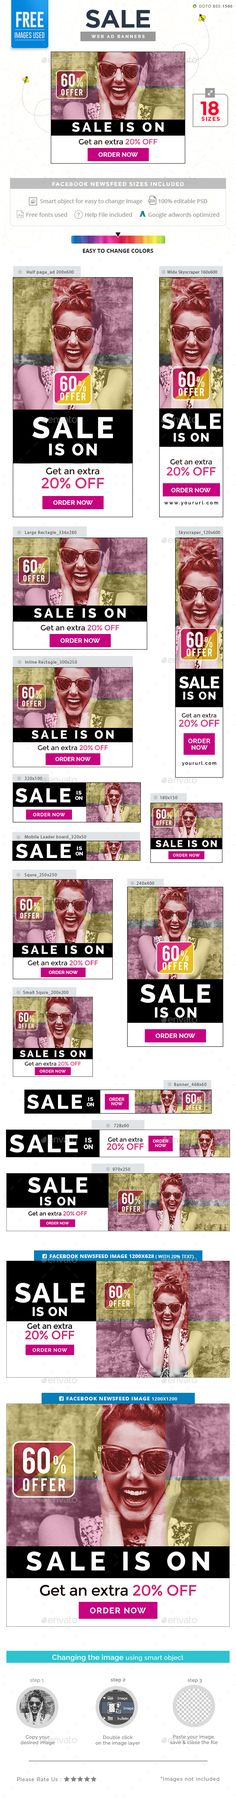 Sale Banners Template PSD